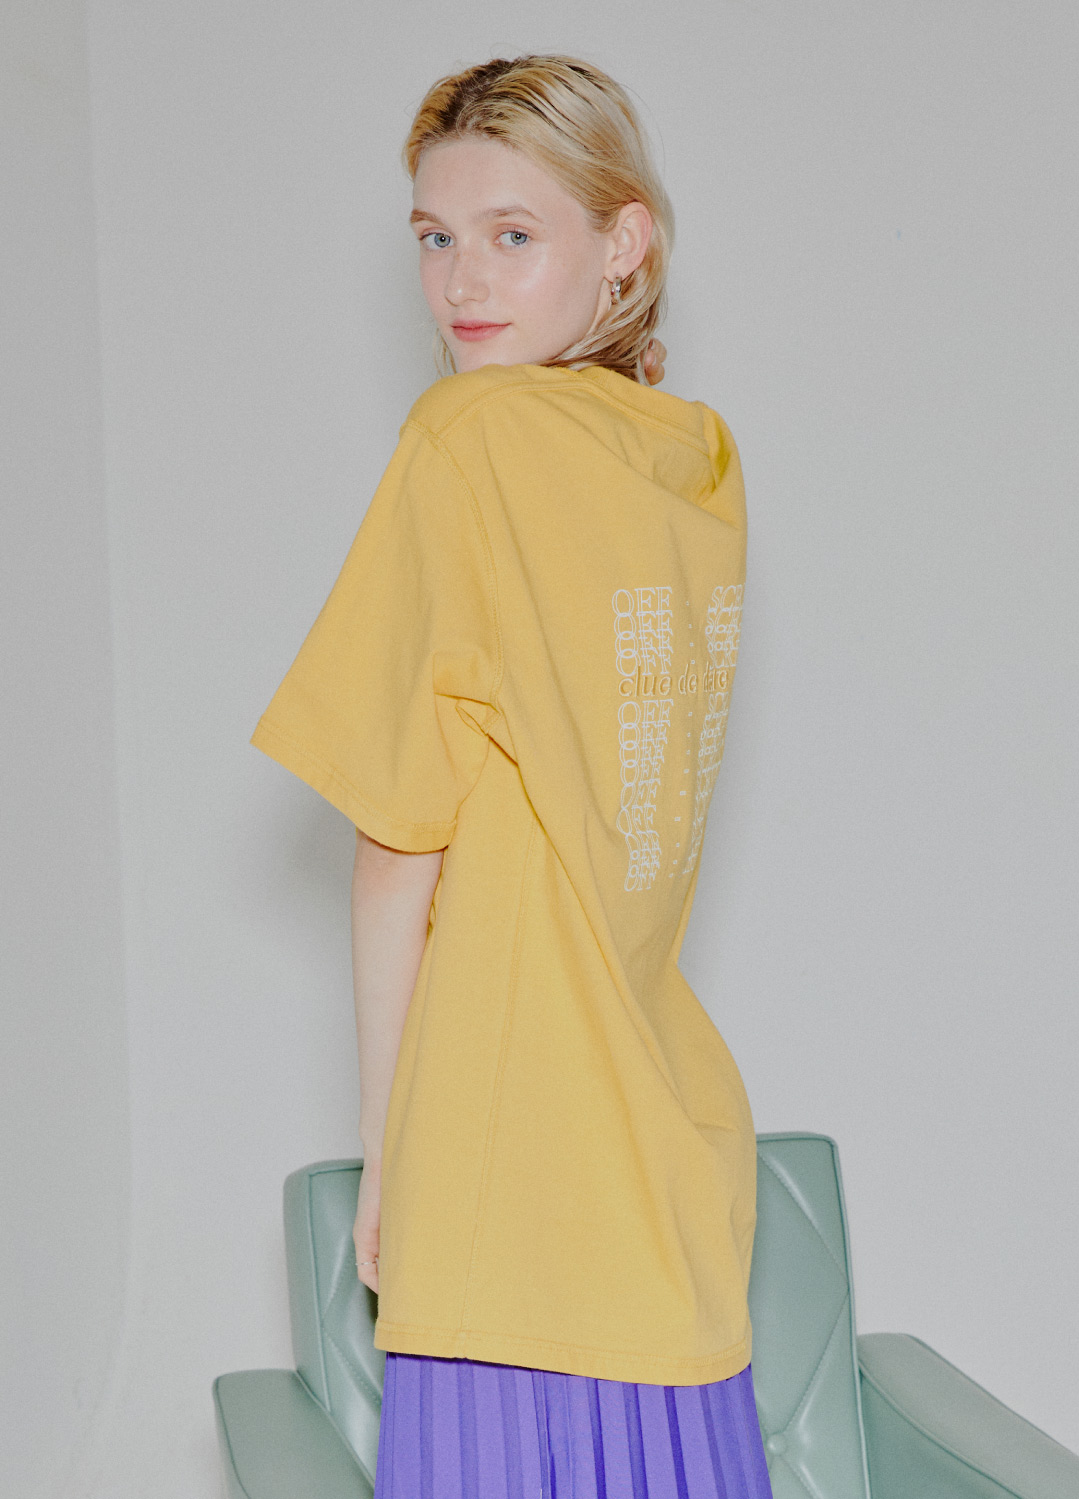 off-script t-shirts Yellow